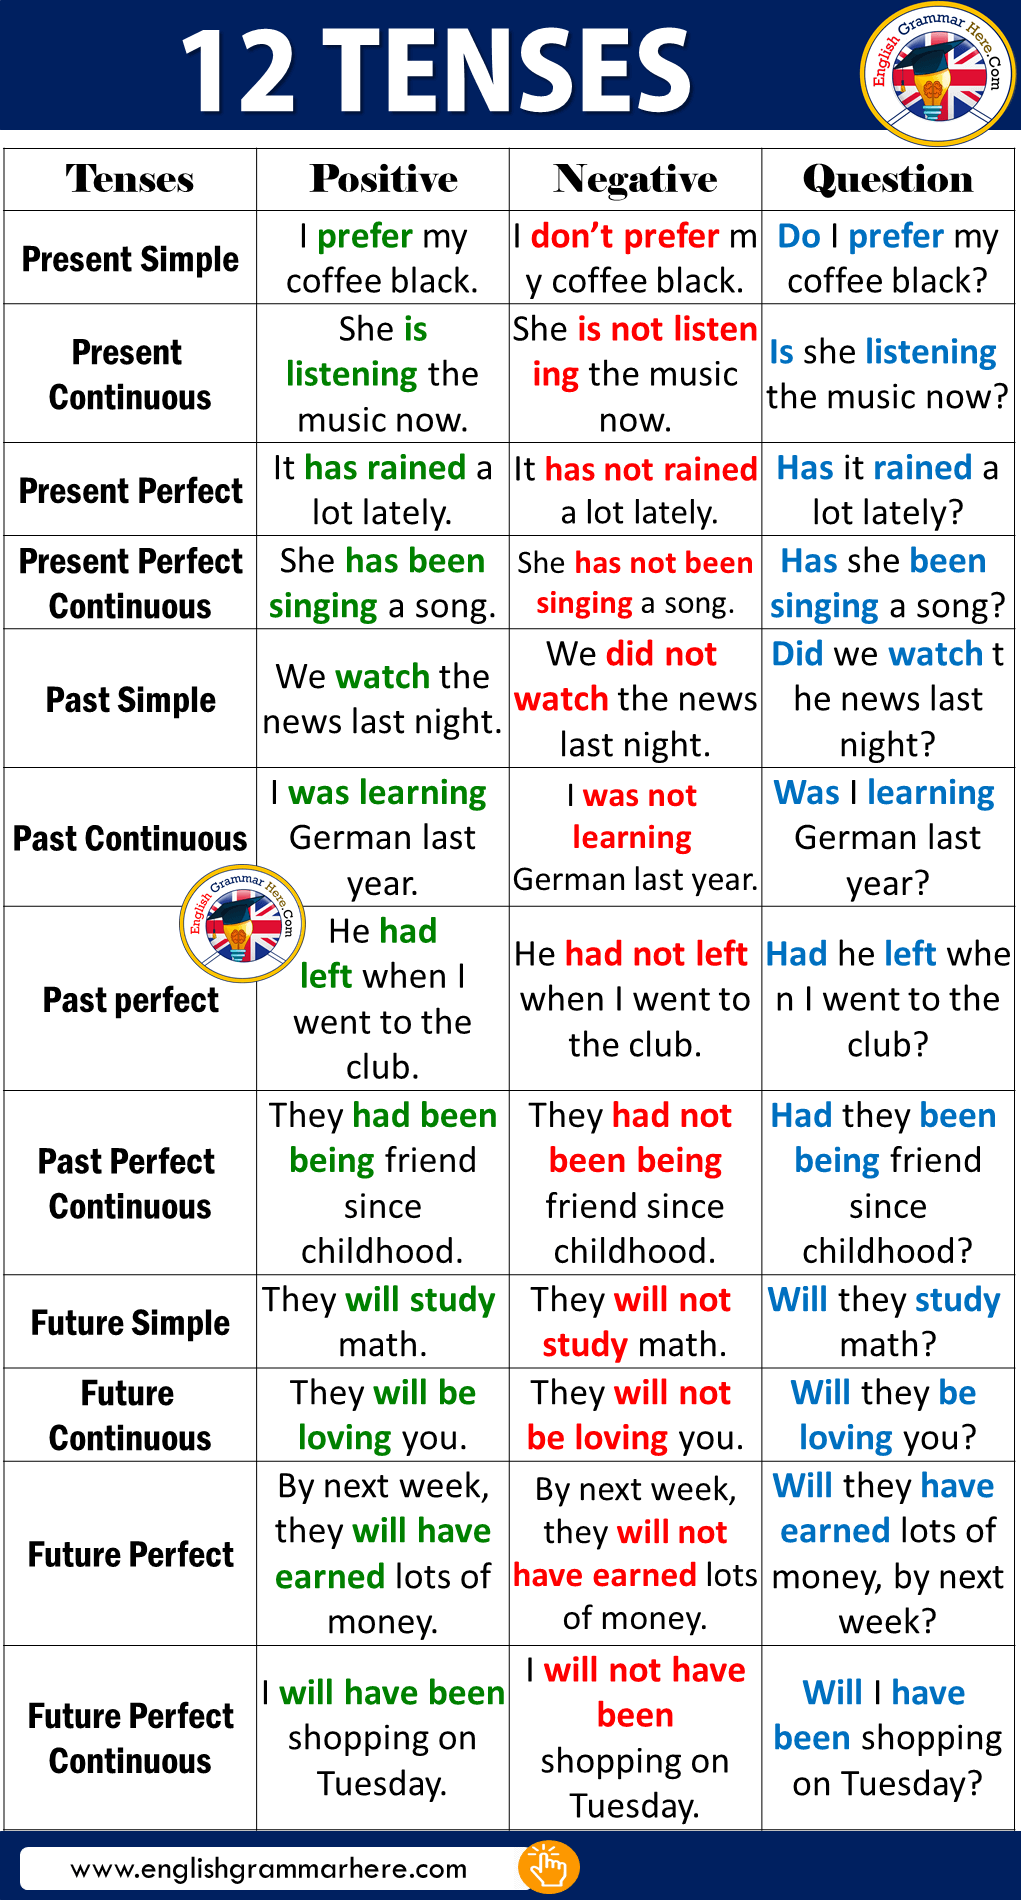 12 Tenses & Examples in English